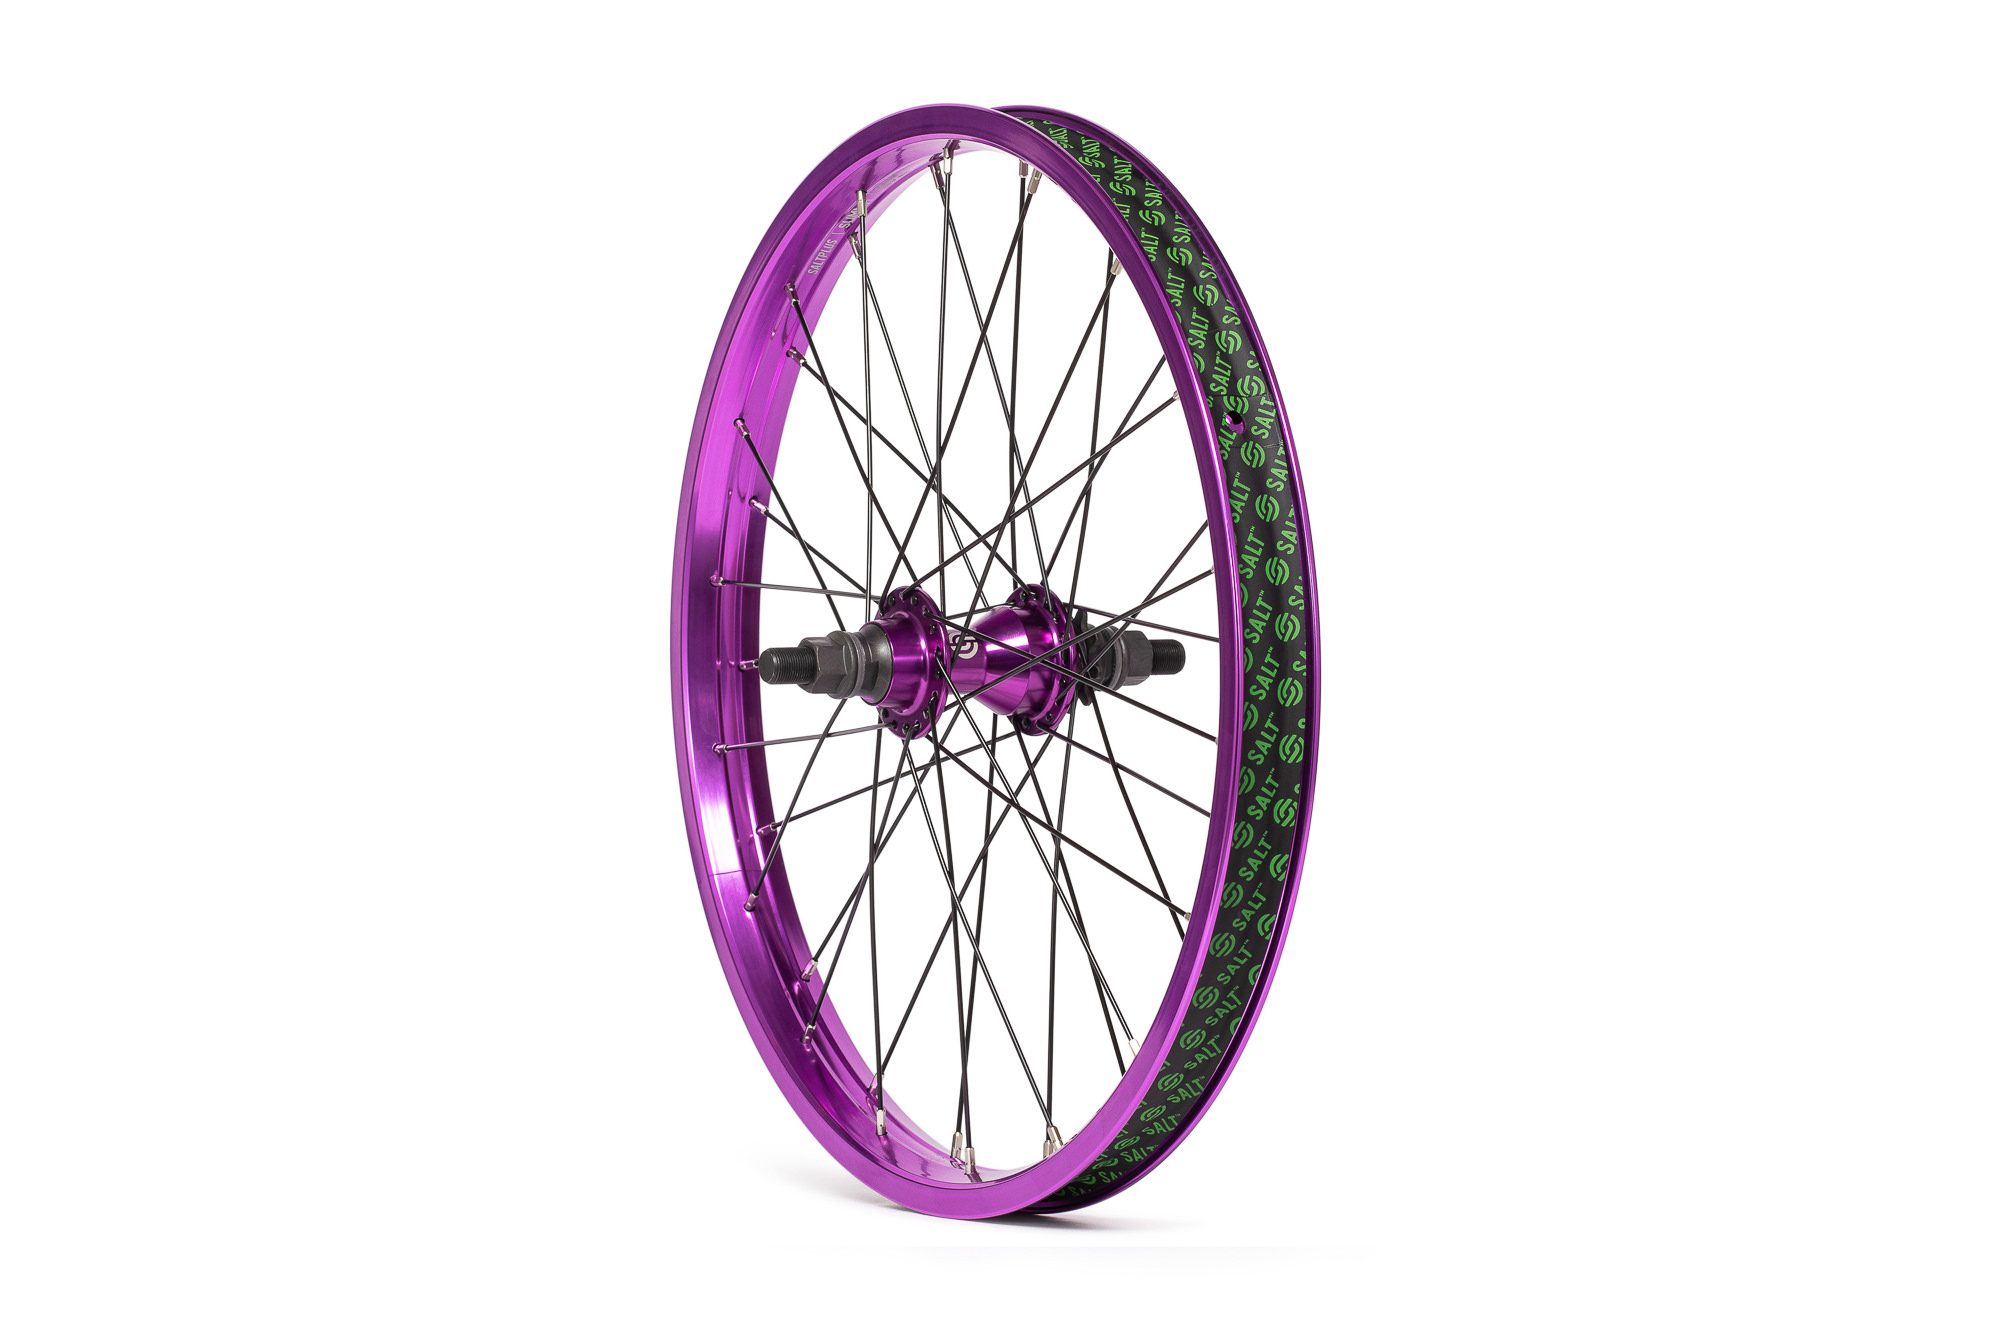 Salt_Everest_CS_rear_wheel_purple-02